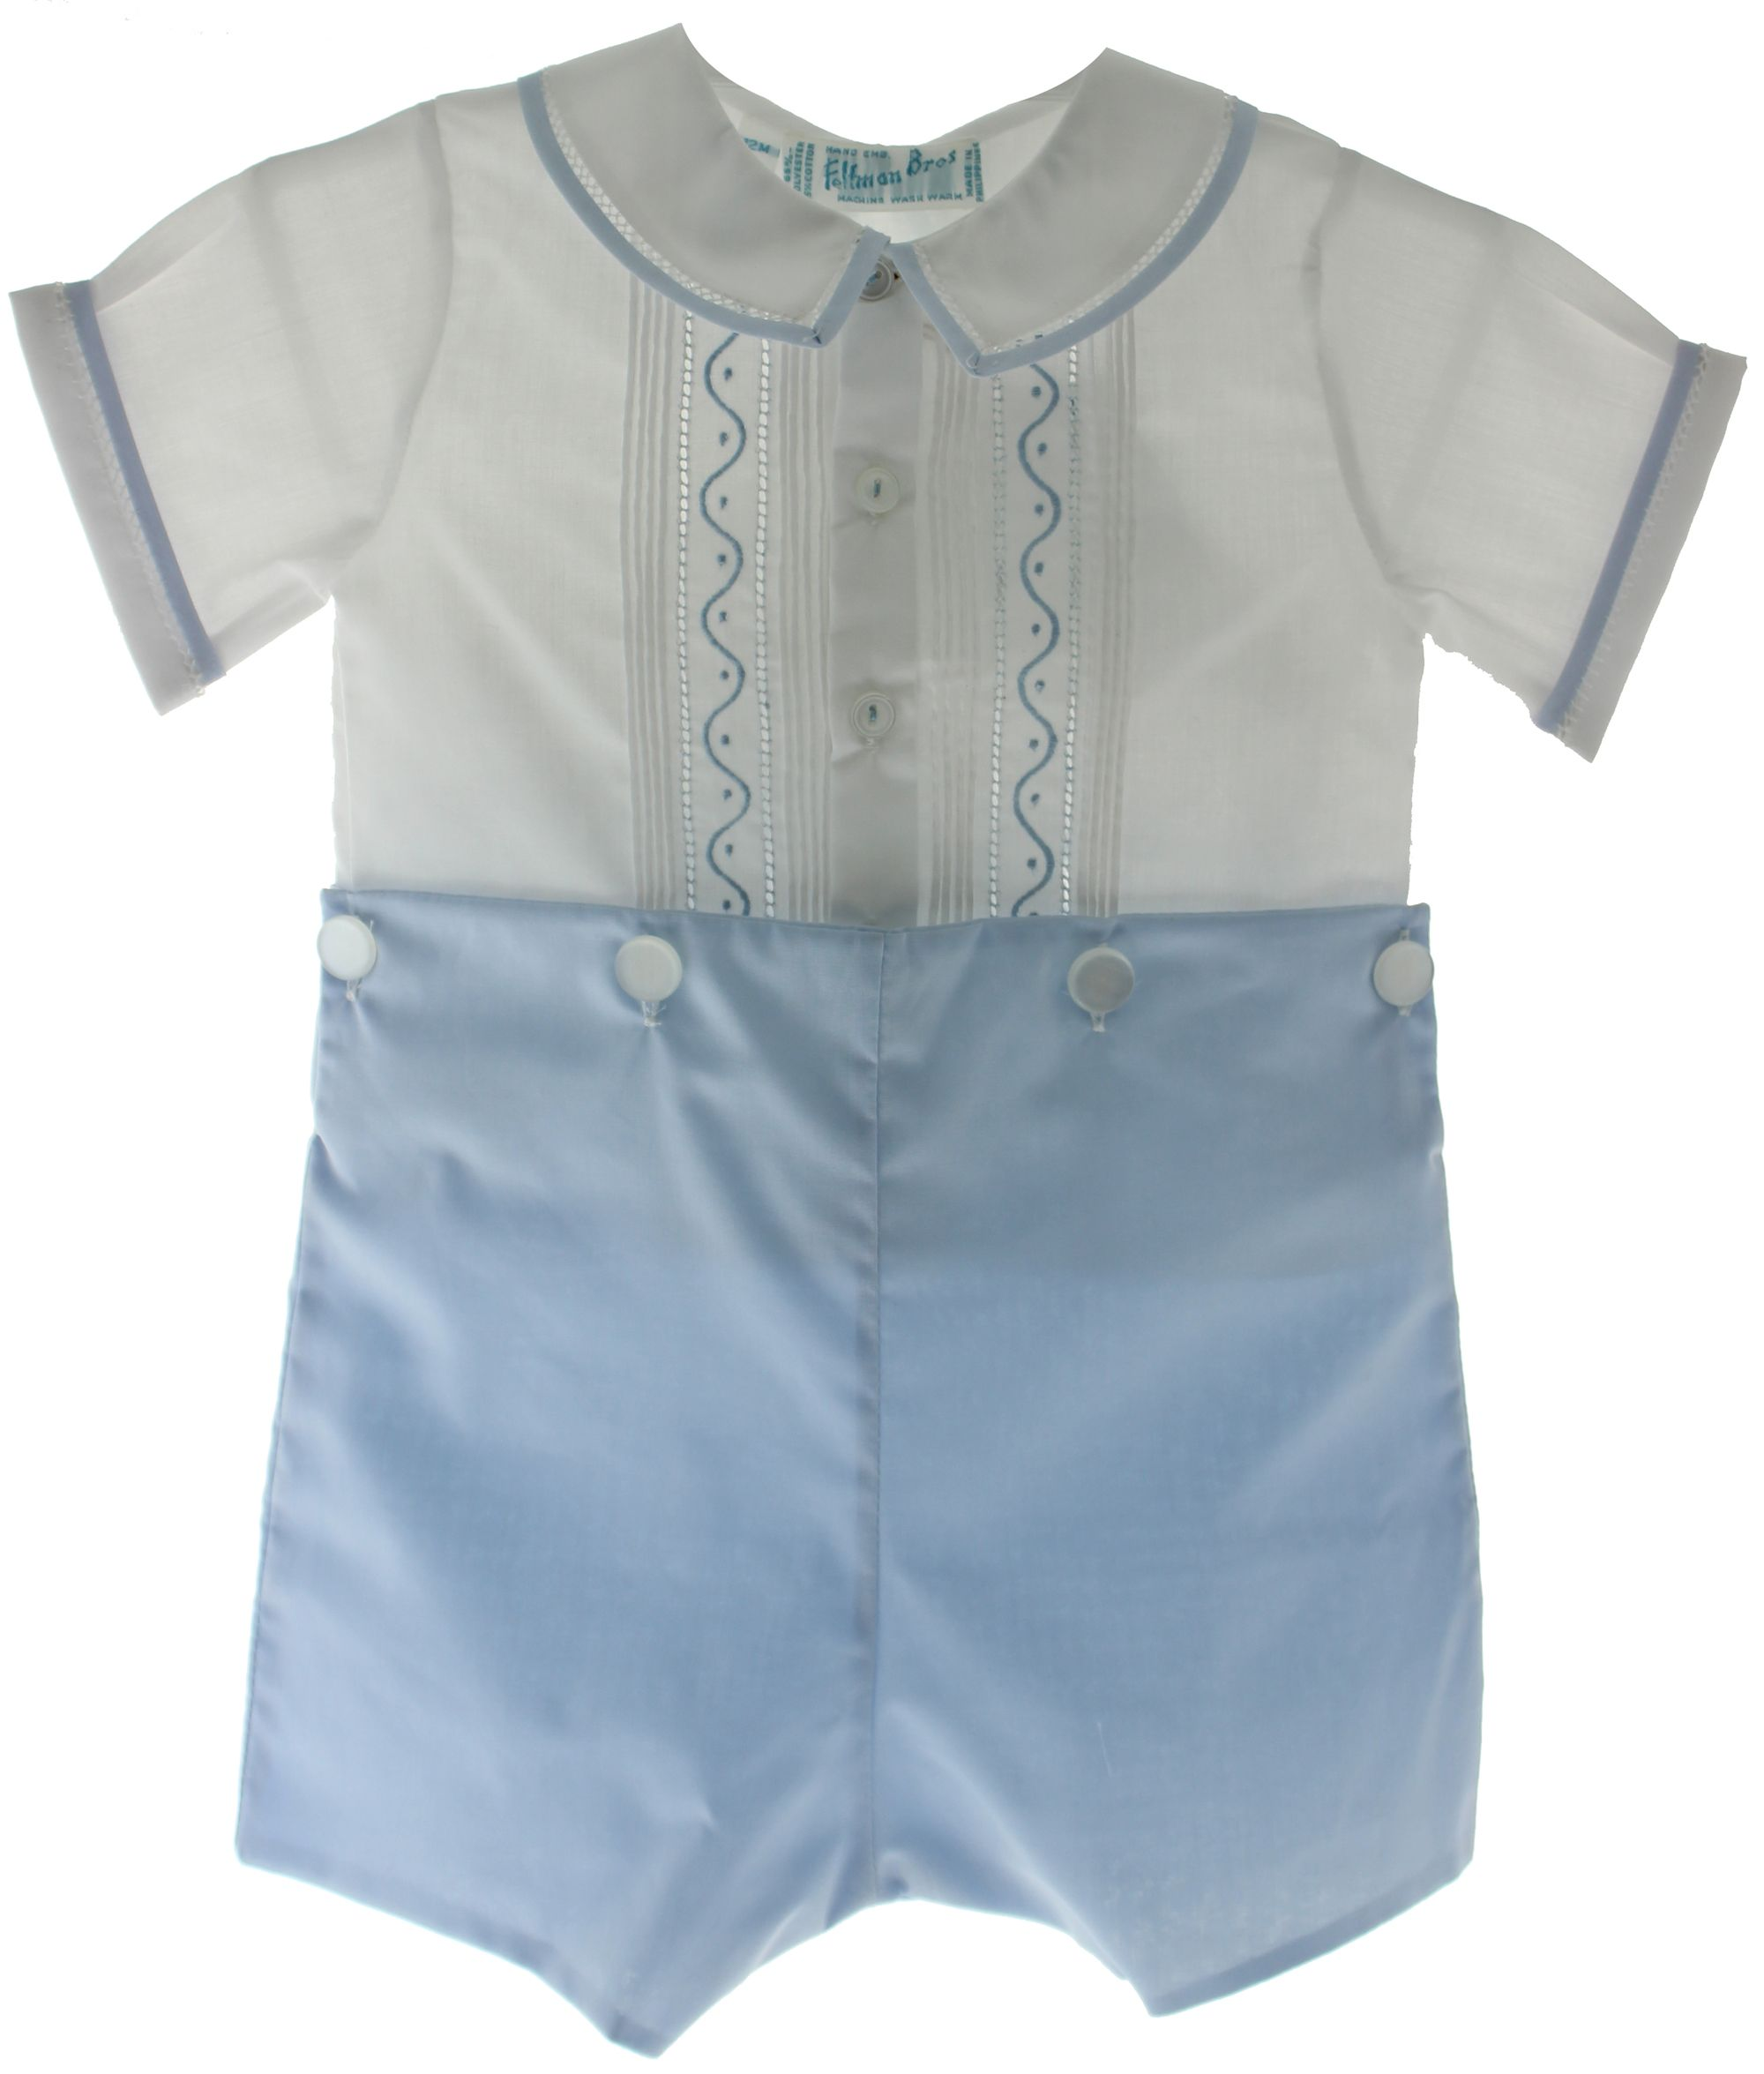 Dressy Wedding Outfits for Baby Boy | Babies and Blog